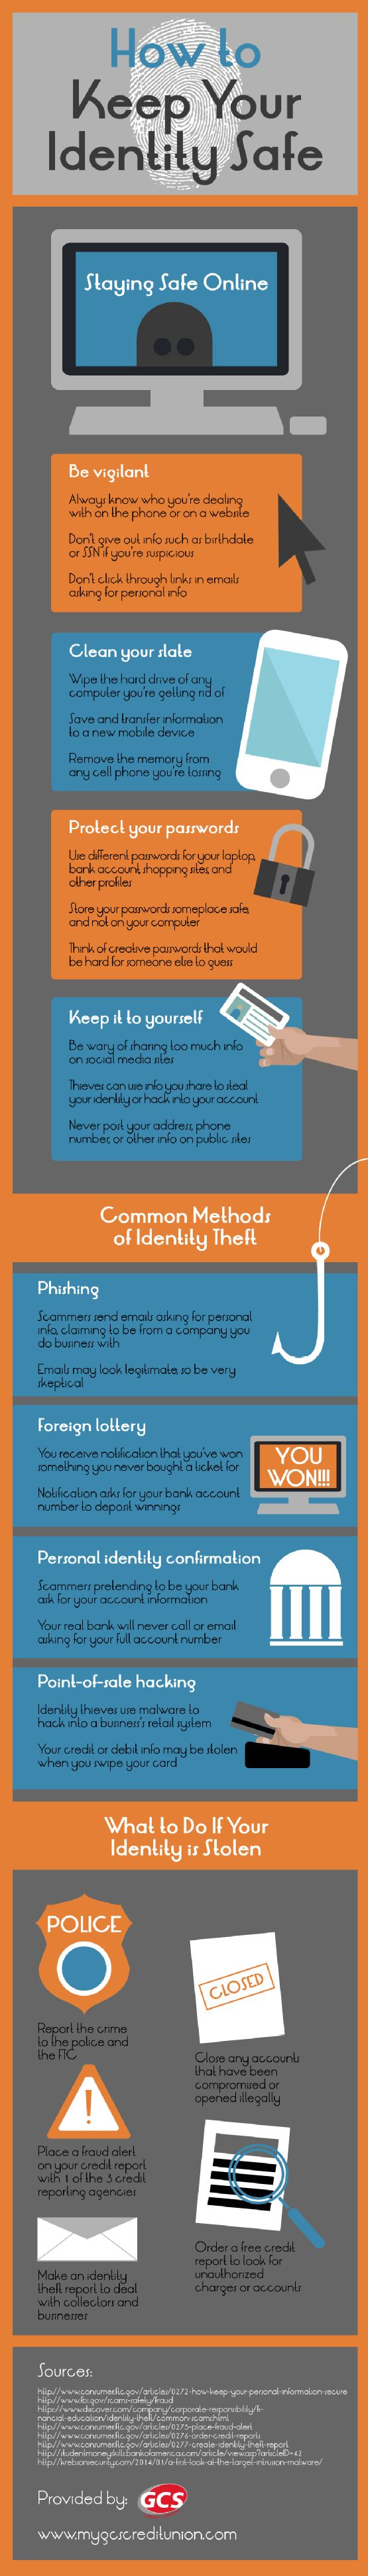 How to Keep Your Identity Safe   #Infographic #HowTo #Identity